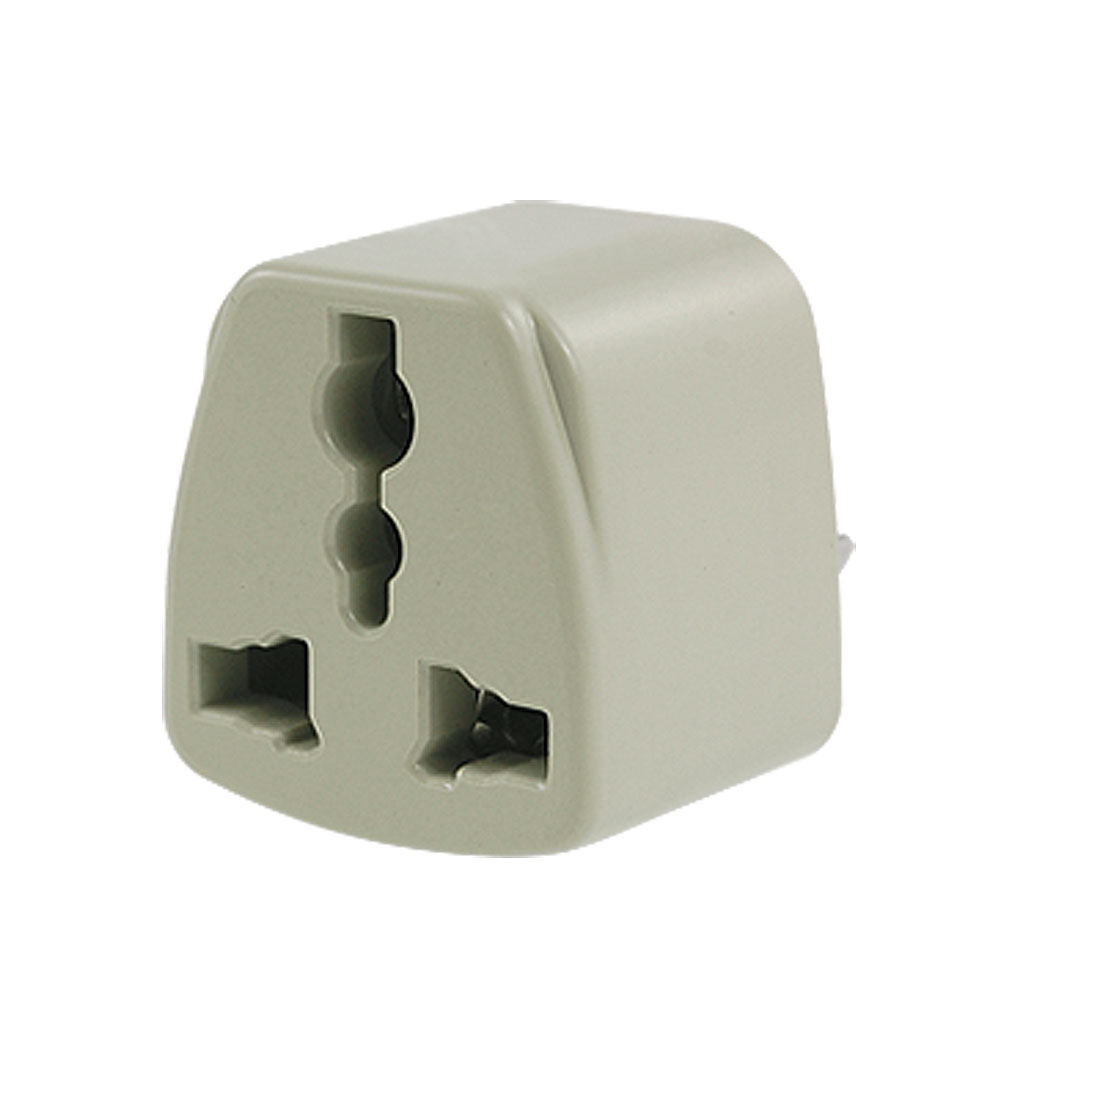 AU Plug AC 250V 10A to EU US UK Socket Adapter Converter